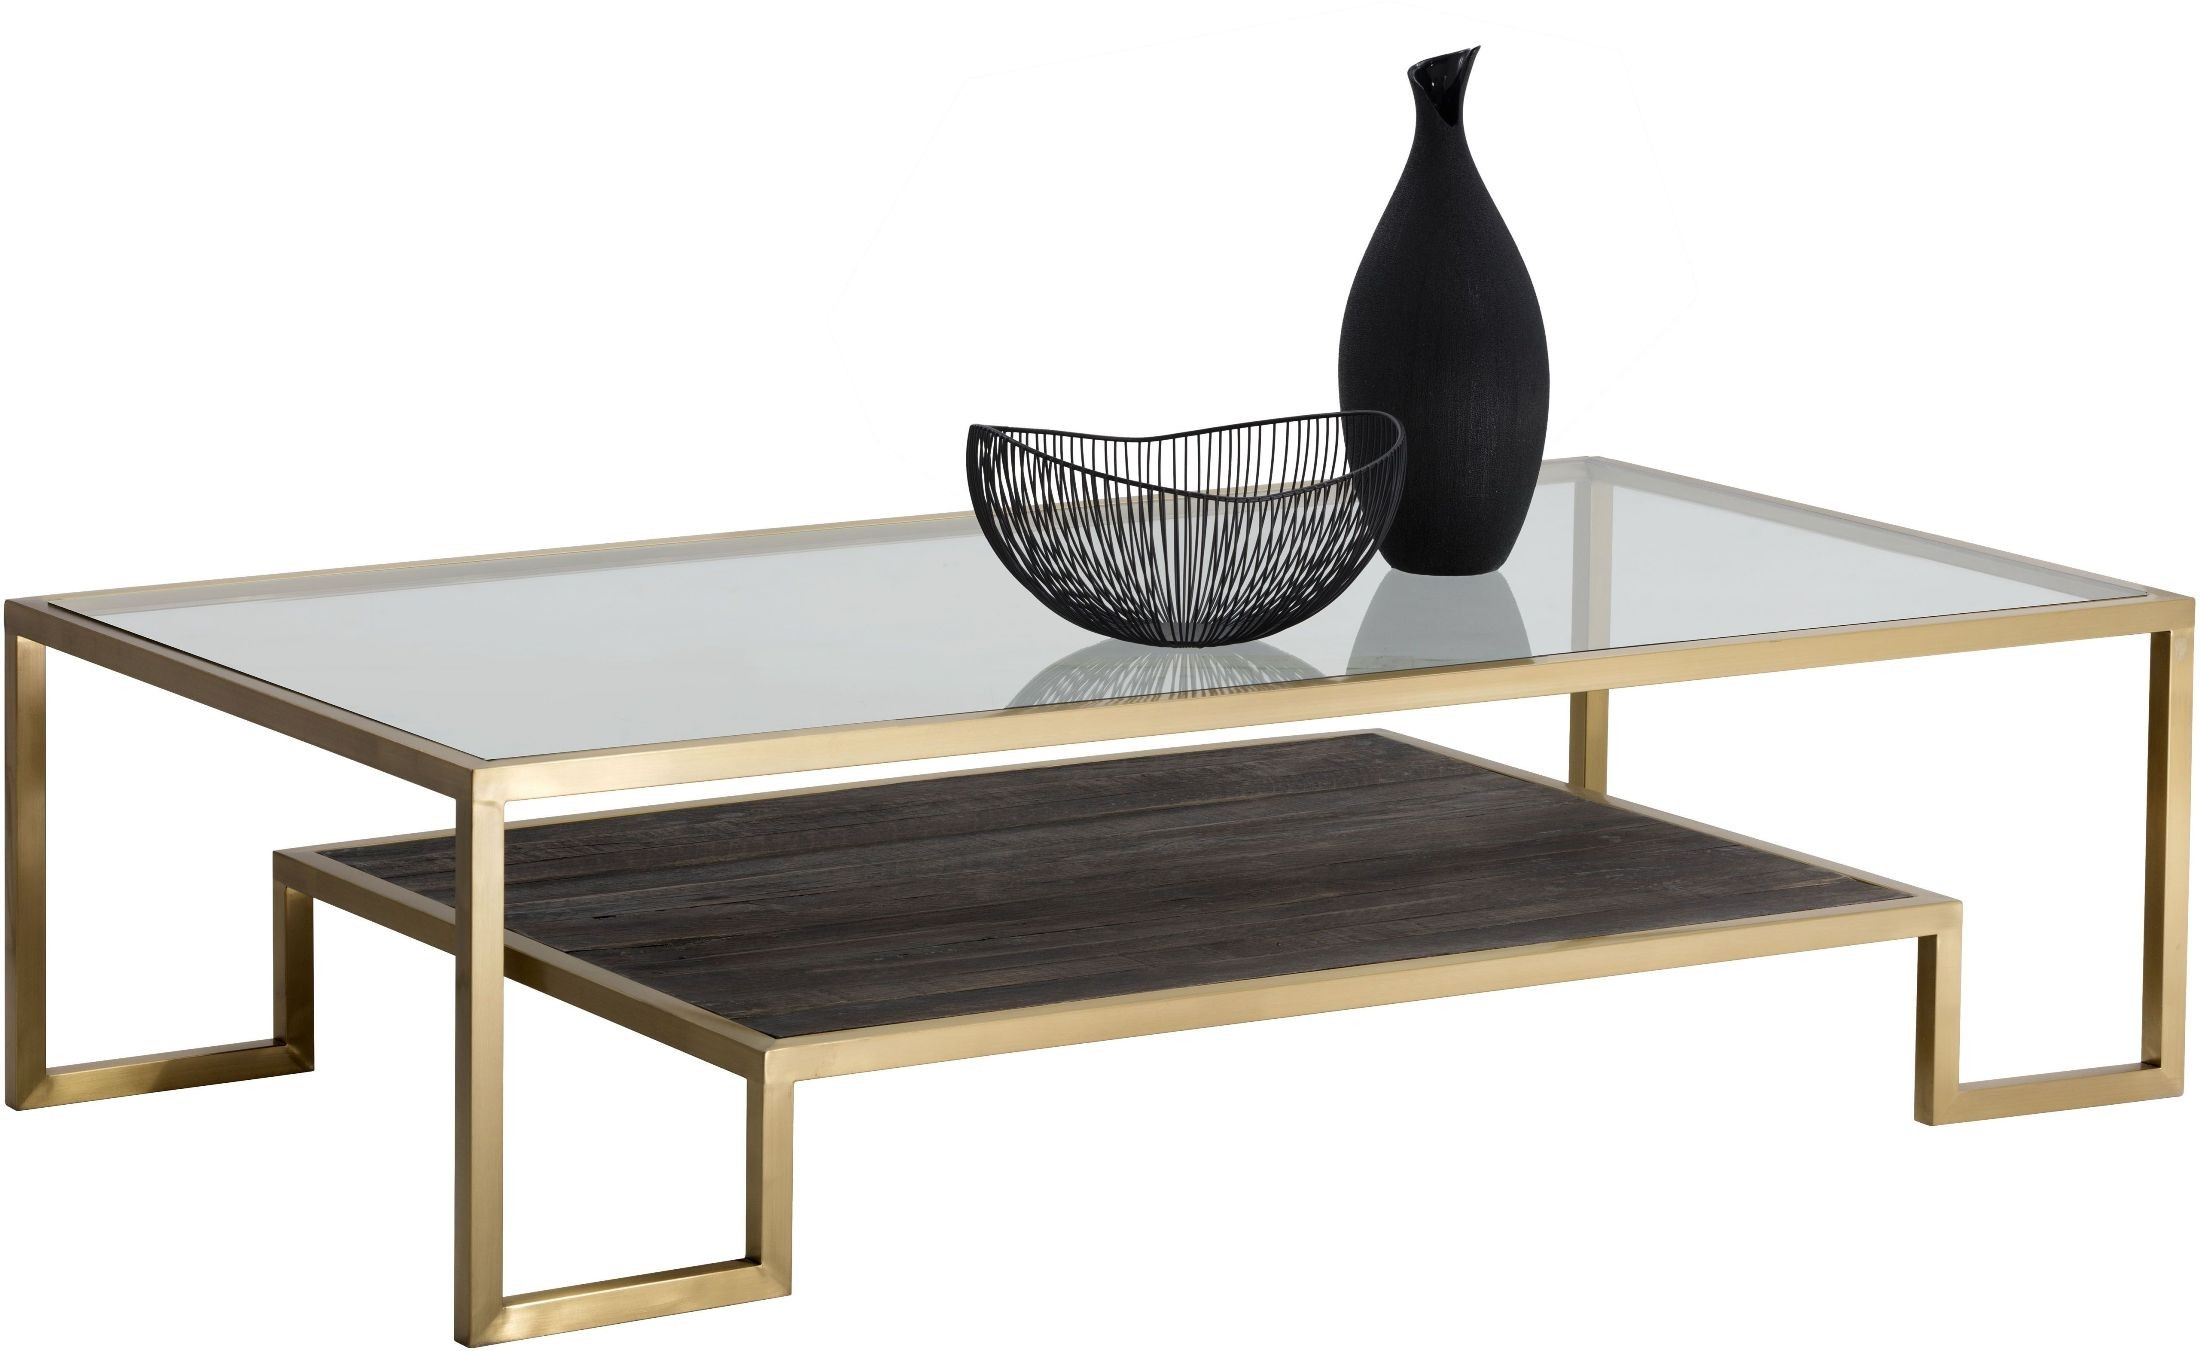 Carver matte gold coffee table from sunpan coleman furniture carver matte gold coffee table sunpan modern home 2468717 geotapseo Gallery